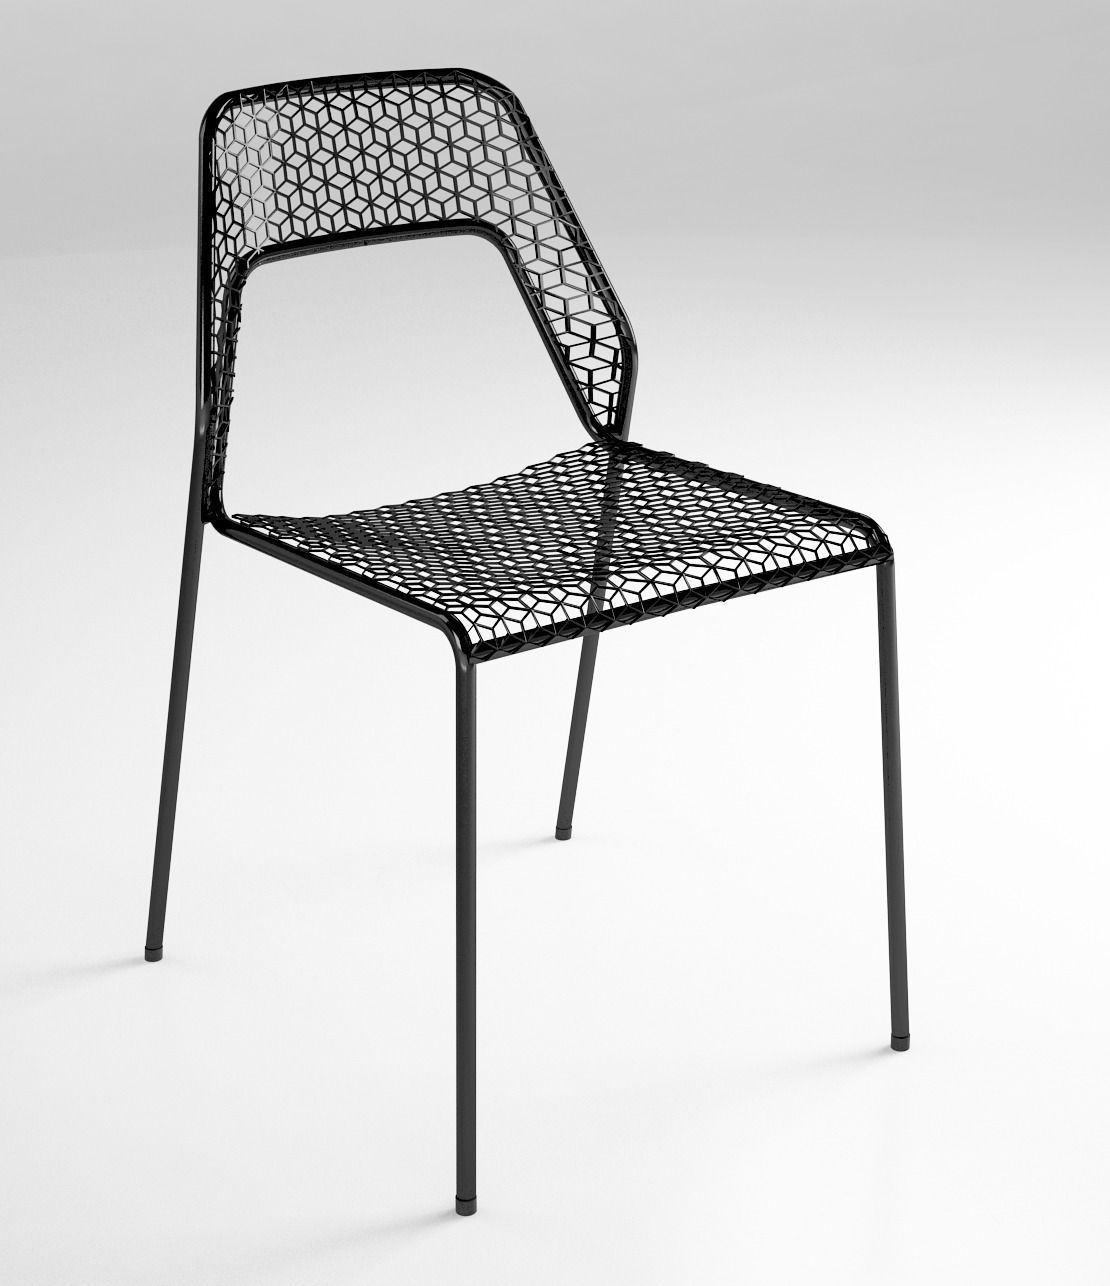 blu dot chairs early learning table and hot mesh chair 3d model max obj cgtrader